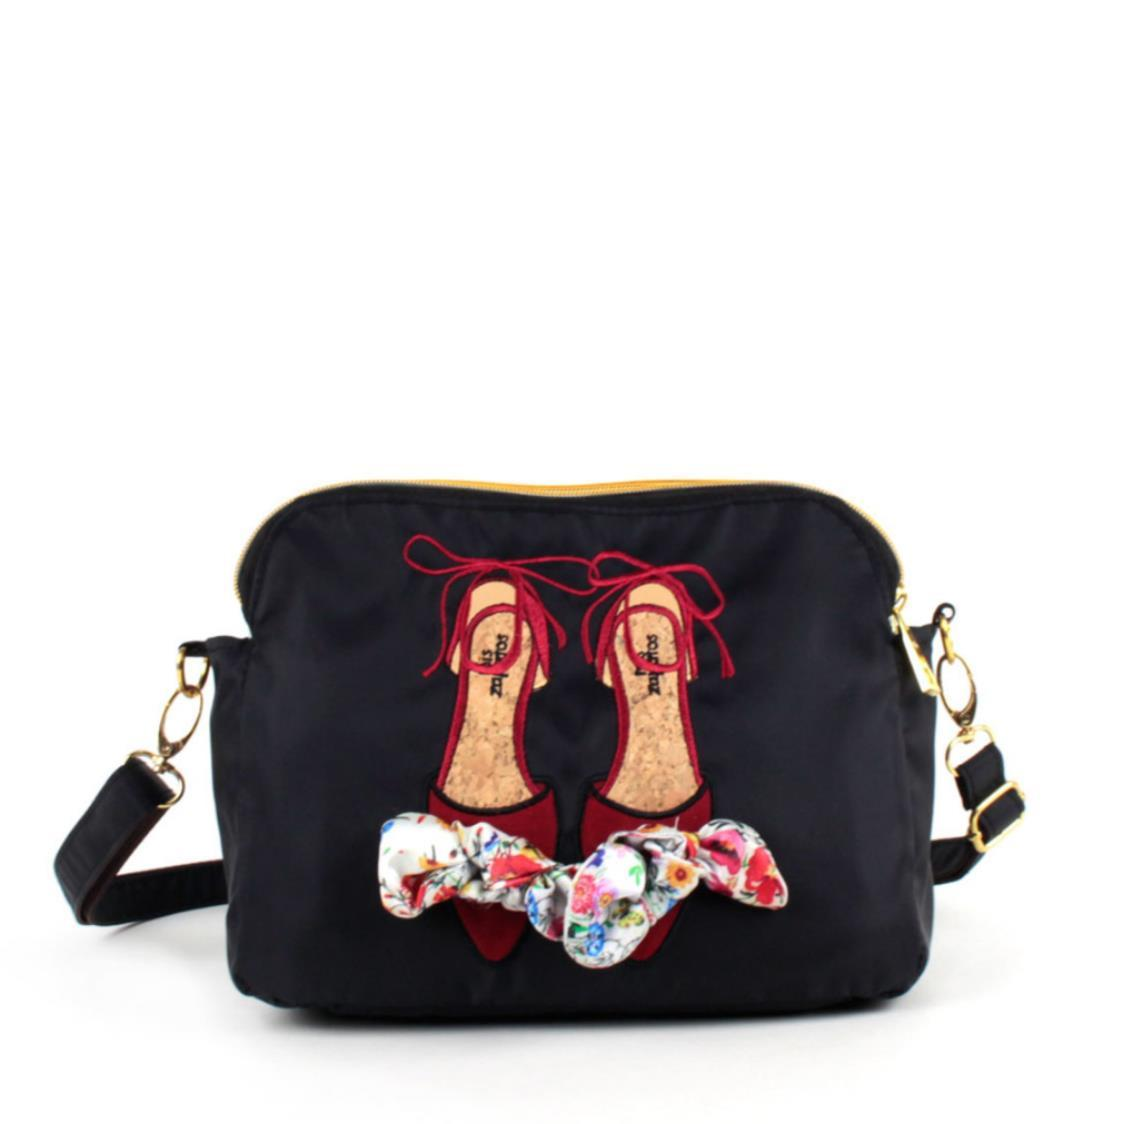 2-Way Use Ladies Shoes with Floral Ribbon Slingbag Black